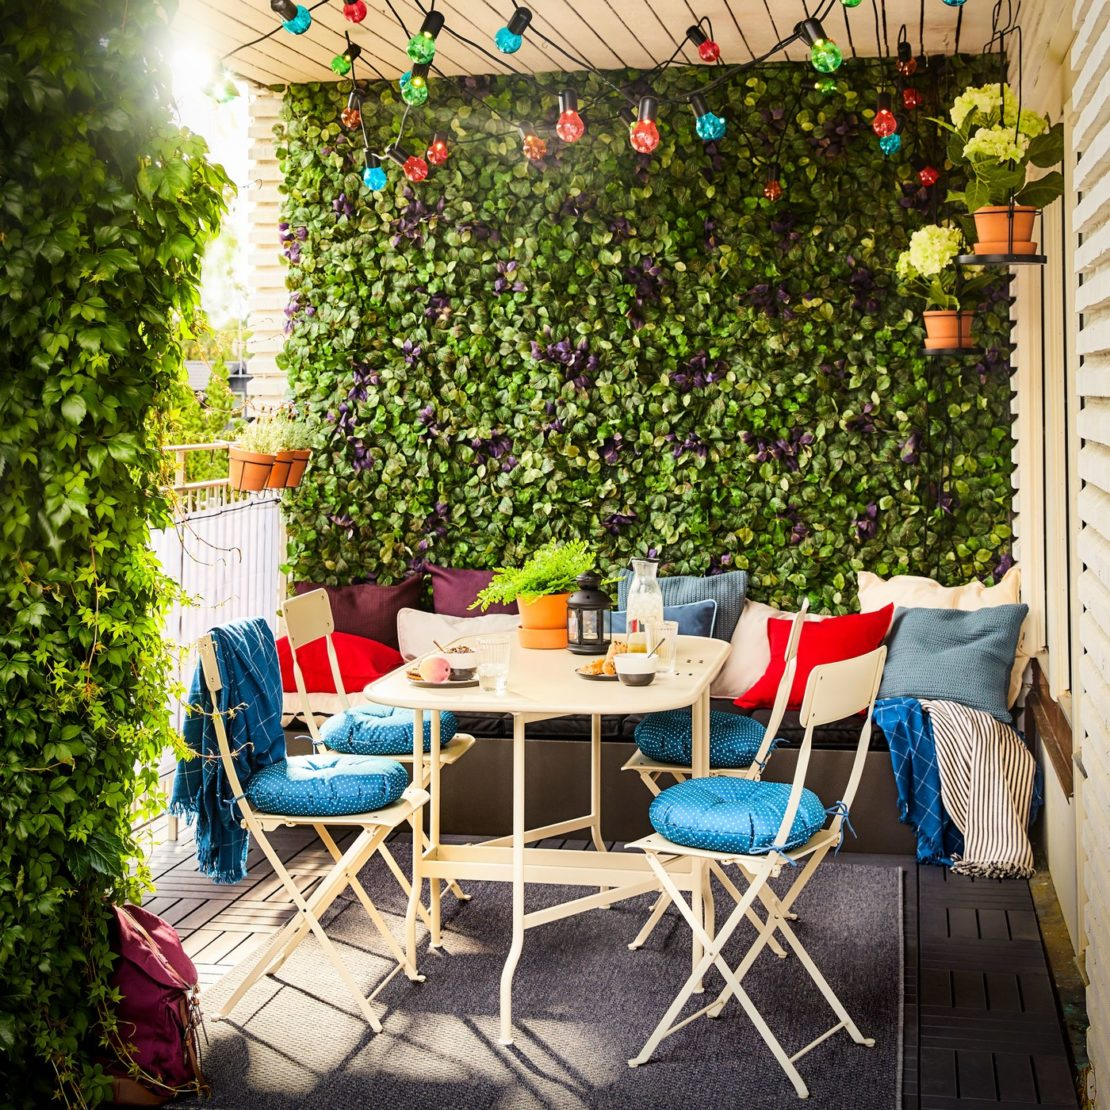 A small balcony with folding chairs and table, coloured string lights and artificial plant tiles covering the walls